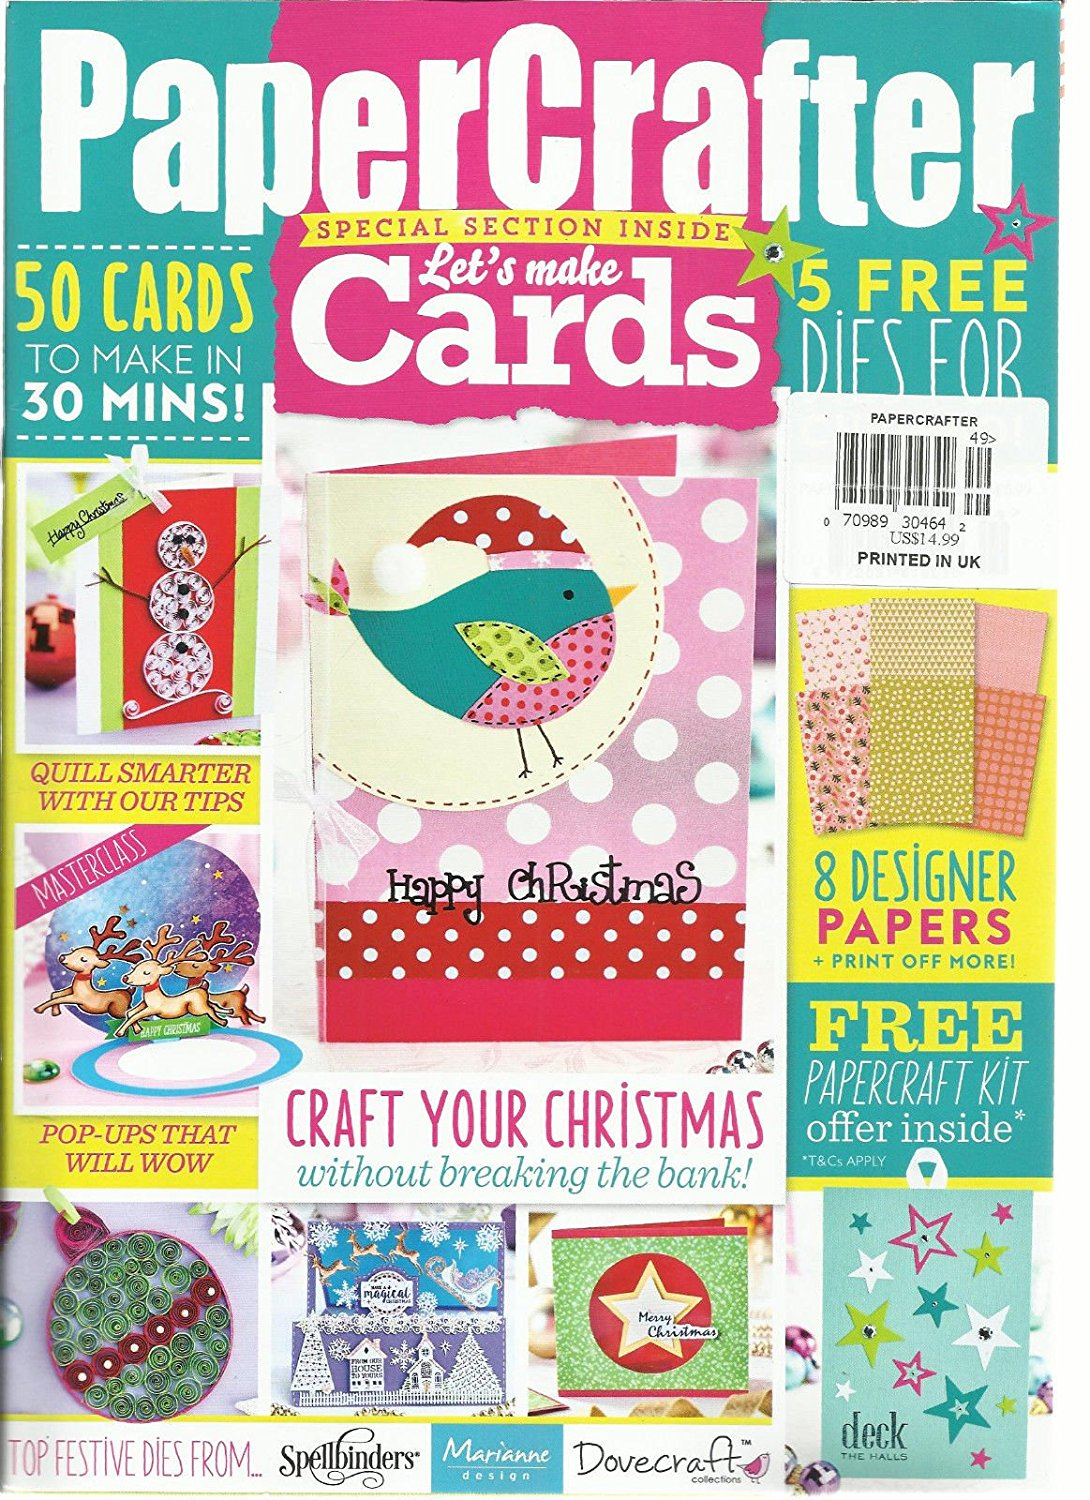 PAPER CRAFTER, LET'S MAKE CARDS, SPECIAL SECTION INSIDE ISSUE, 2016 ISSUE # 99